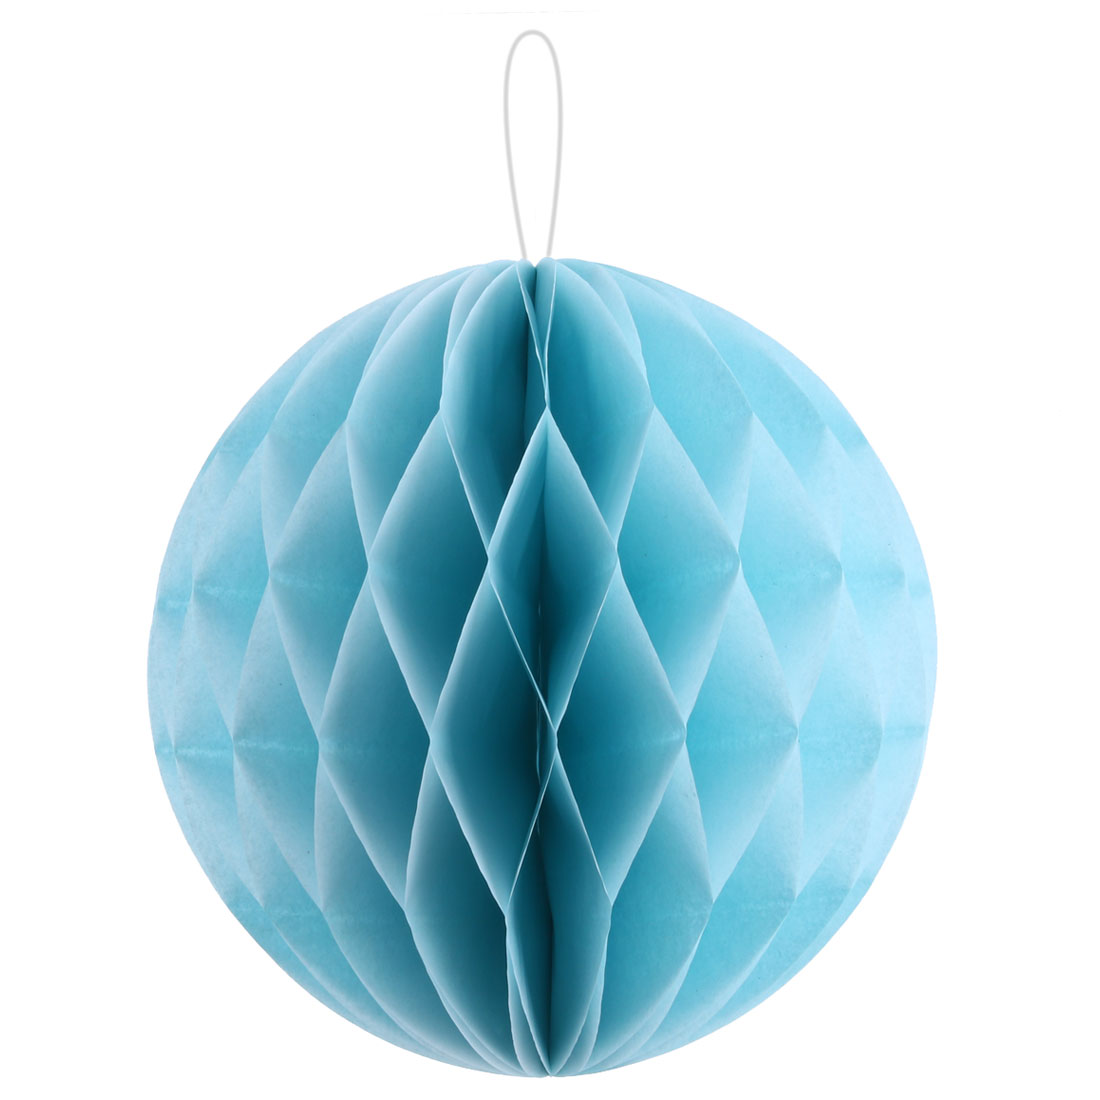 Birthday Party Paper DIY String Hanging Lantern Decor Honeycomb Ball Blue 10 Inch Dia